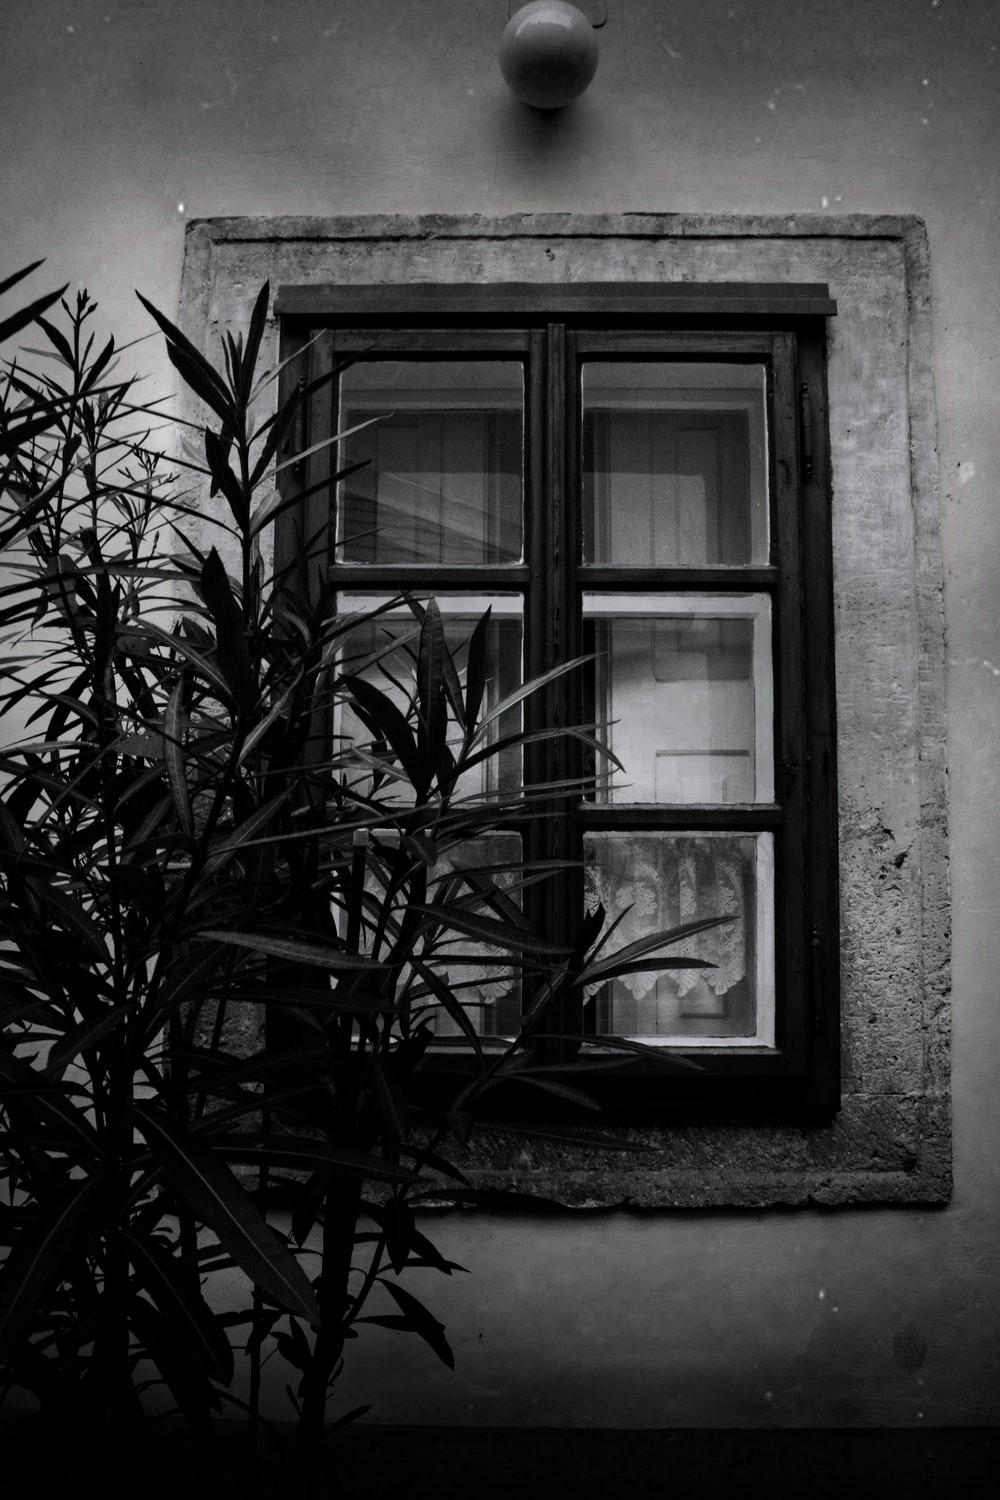 gray-scale photo of glass window